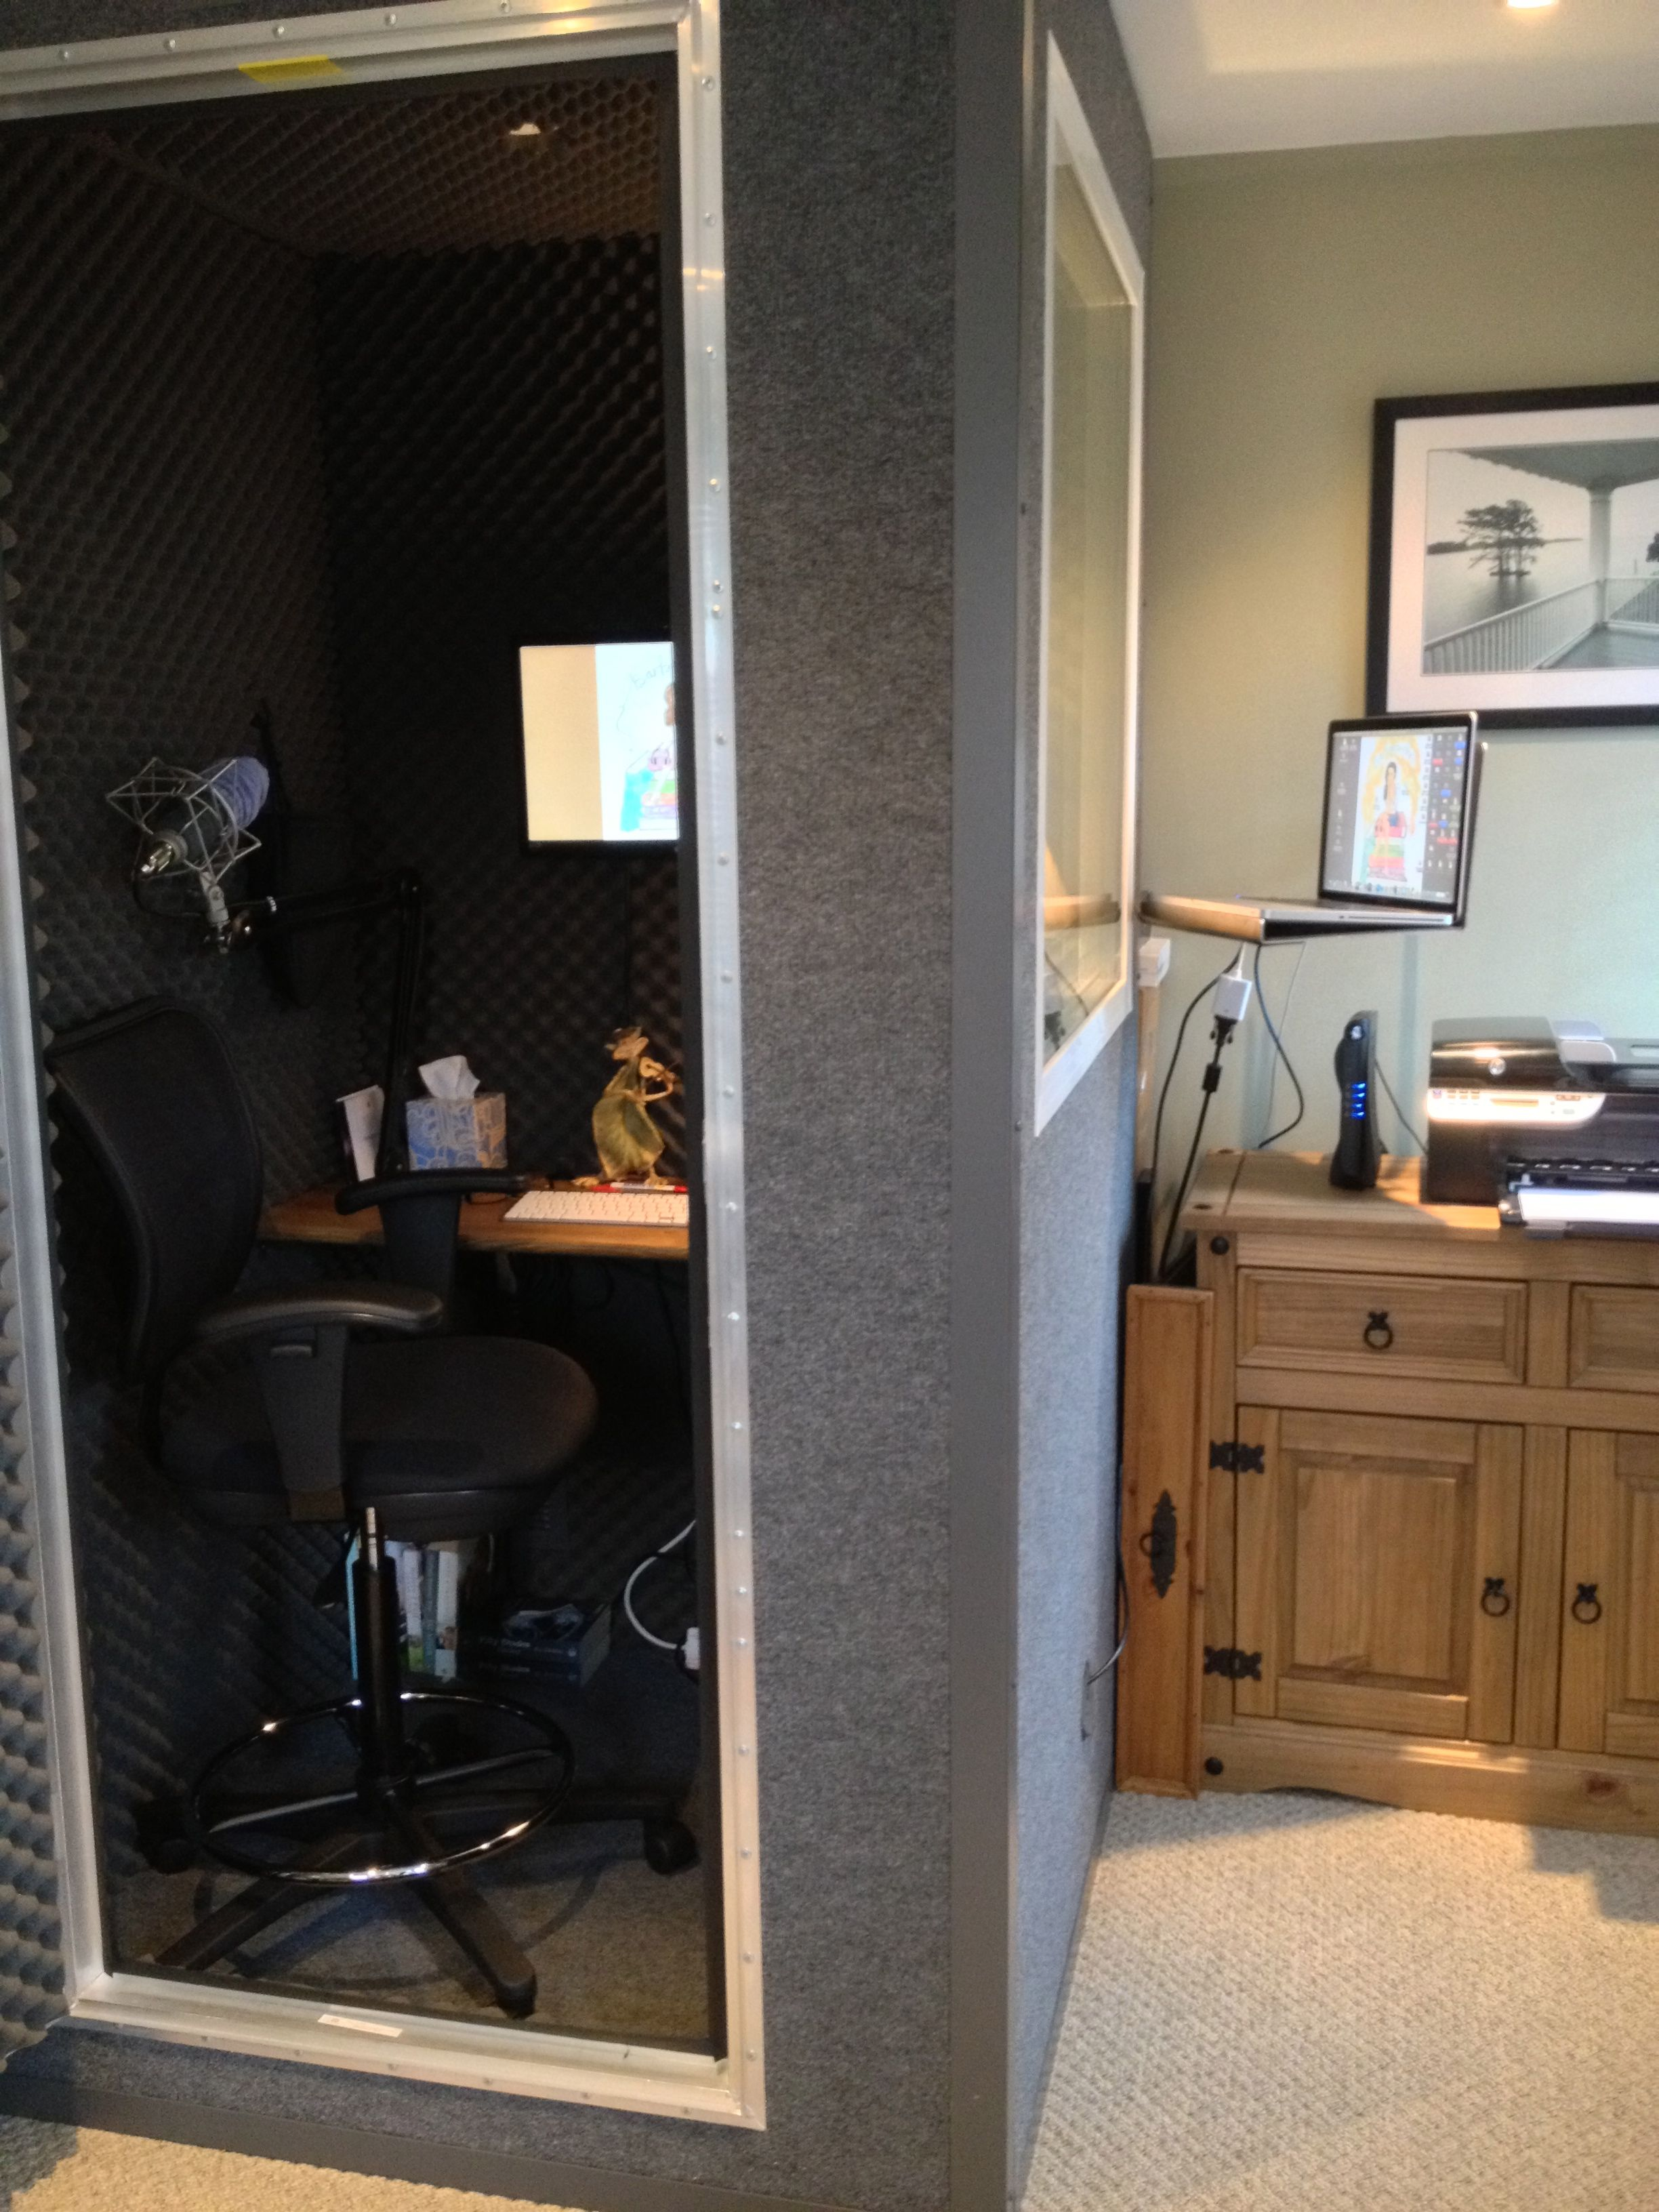 Miraculous Diy Home Studio Recording Booth Ideas Home Studio Recording Largest Home Design Picture Inspirations Pitcheantrous